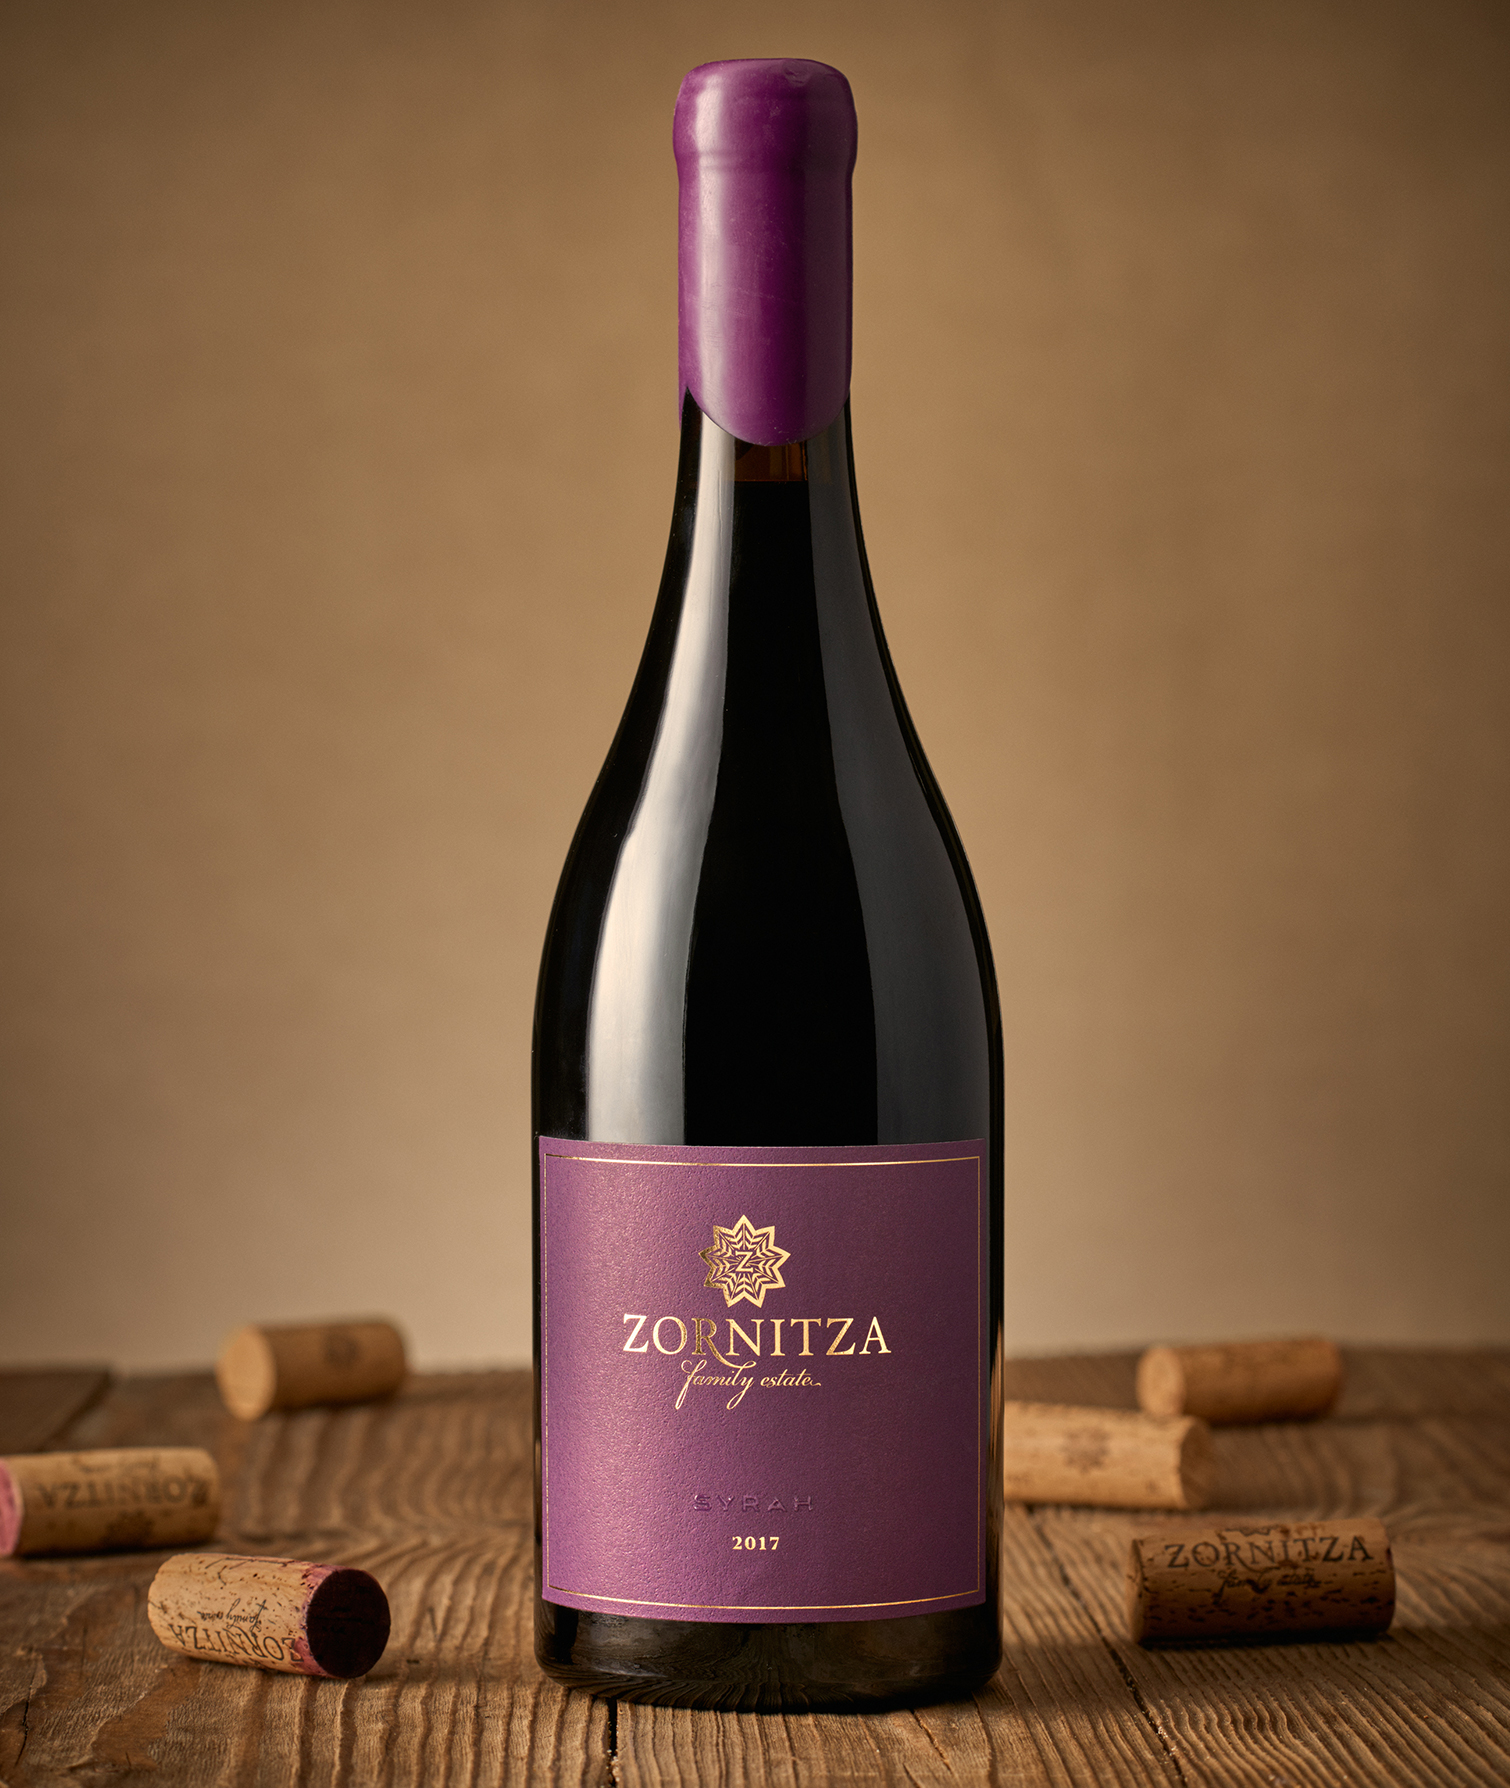 zornitza-wine-vertical-5.jpg